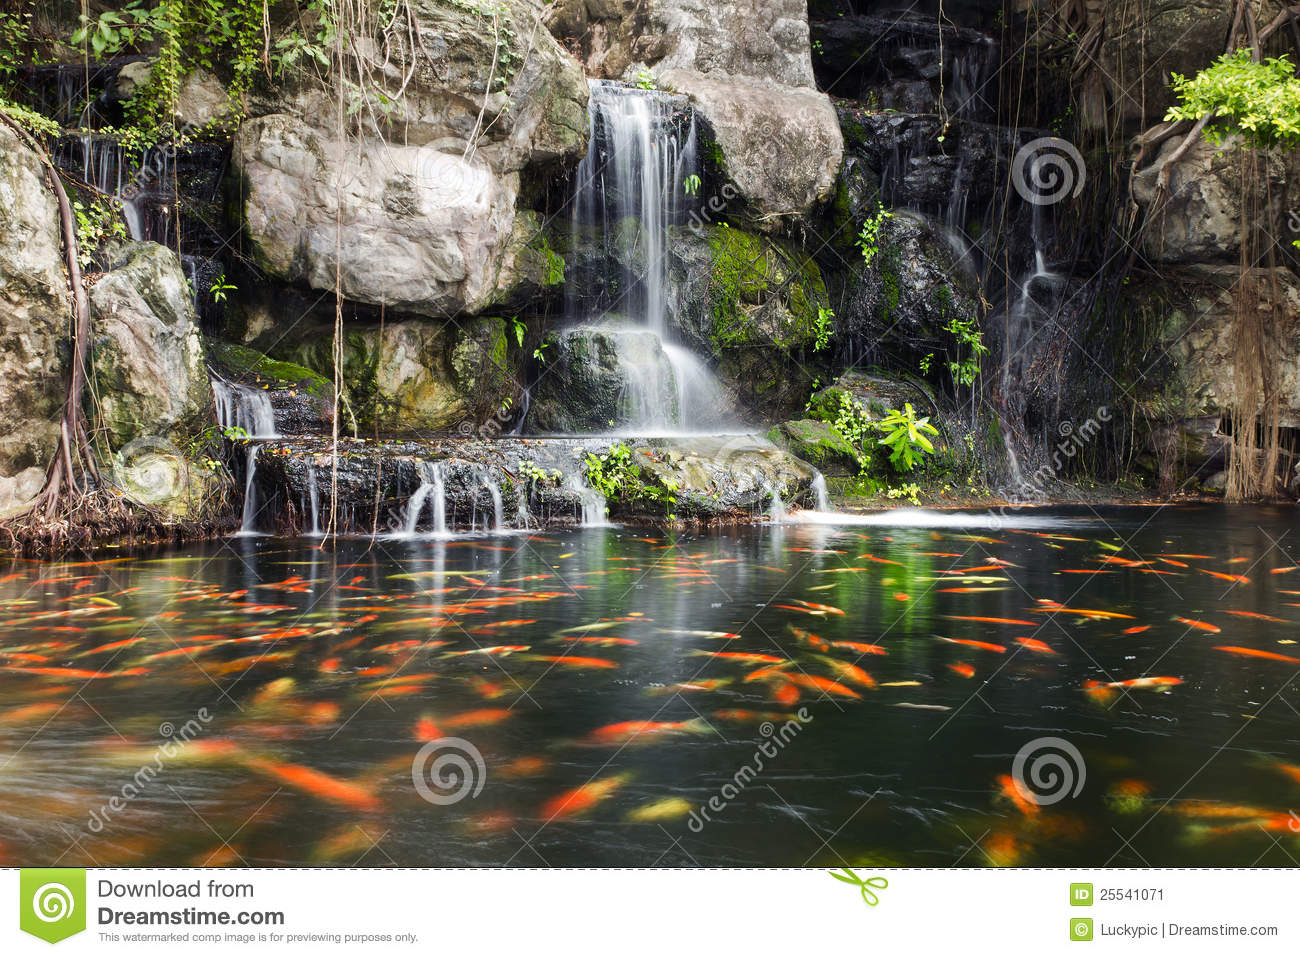 Koi fish in pond at garden with a waterfall stock image for Koi pool water gardens blackpool